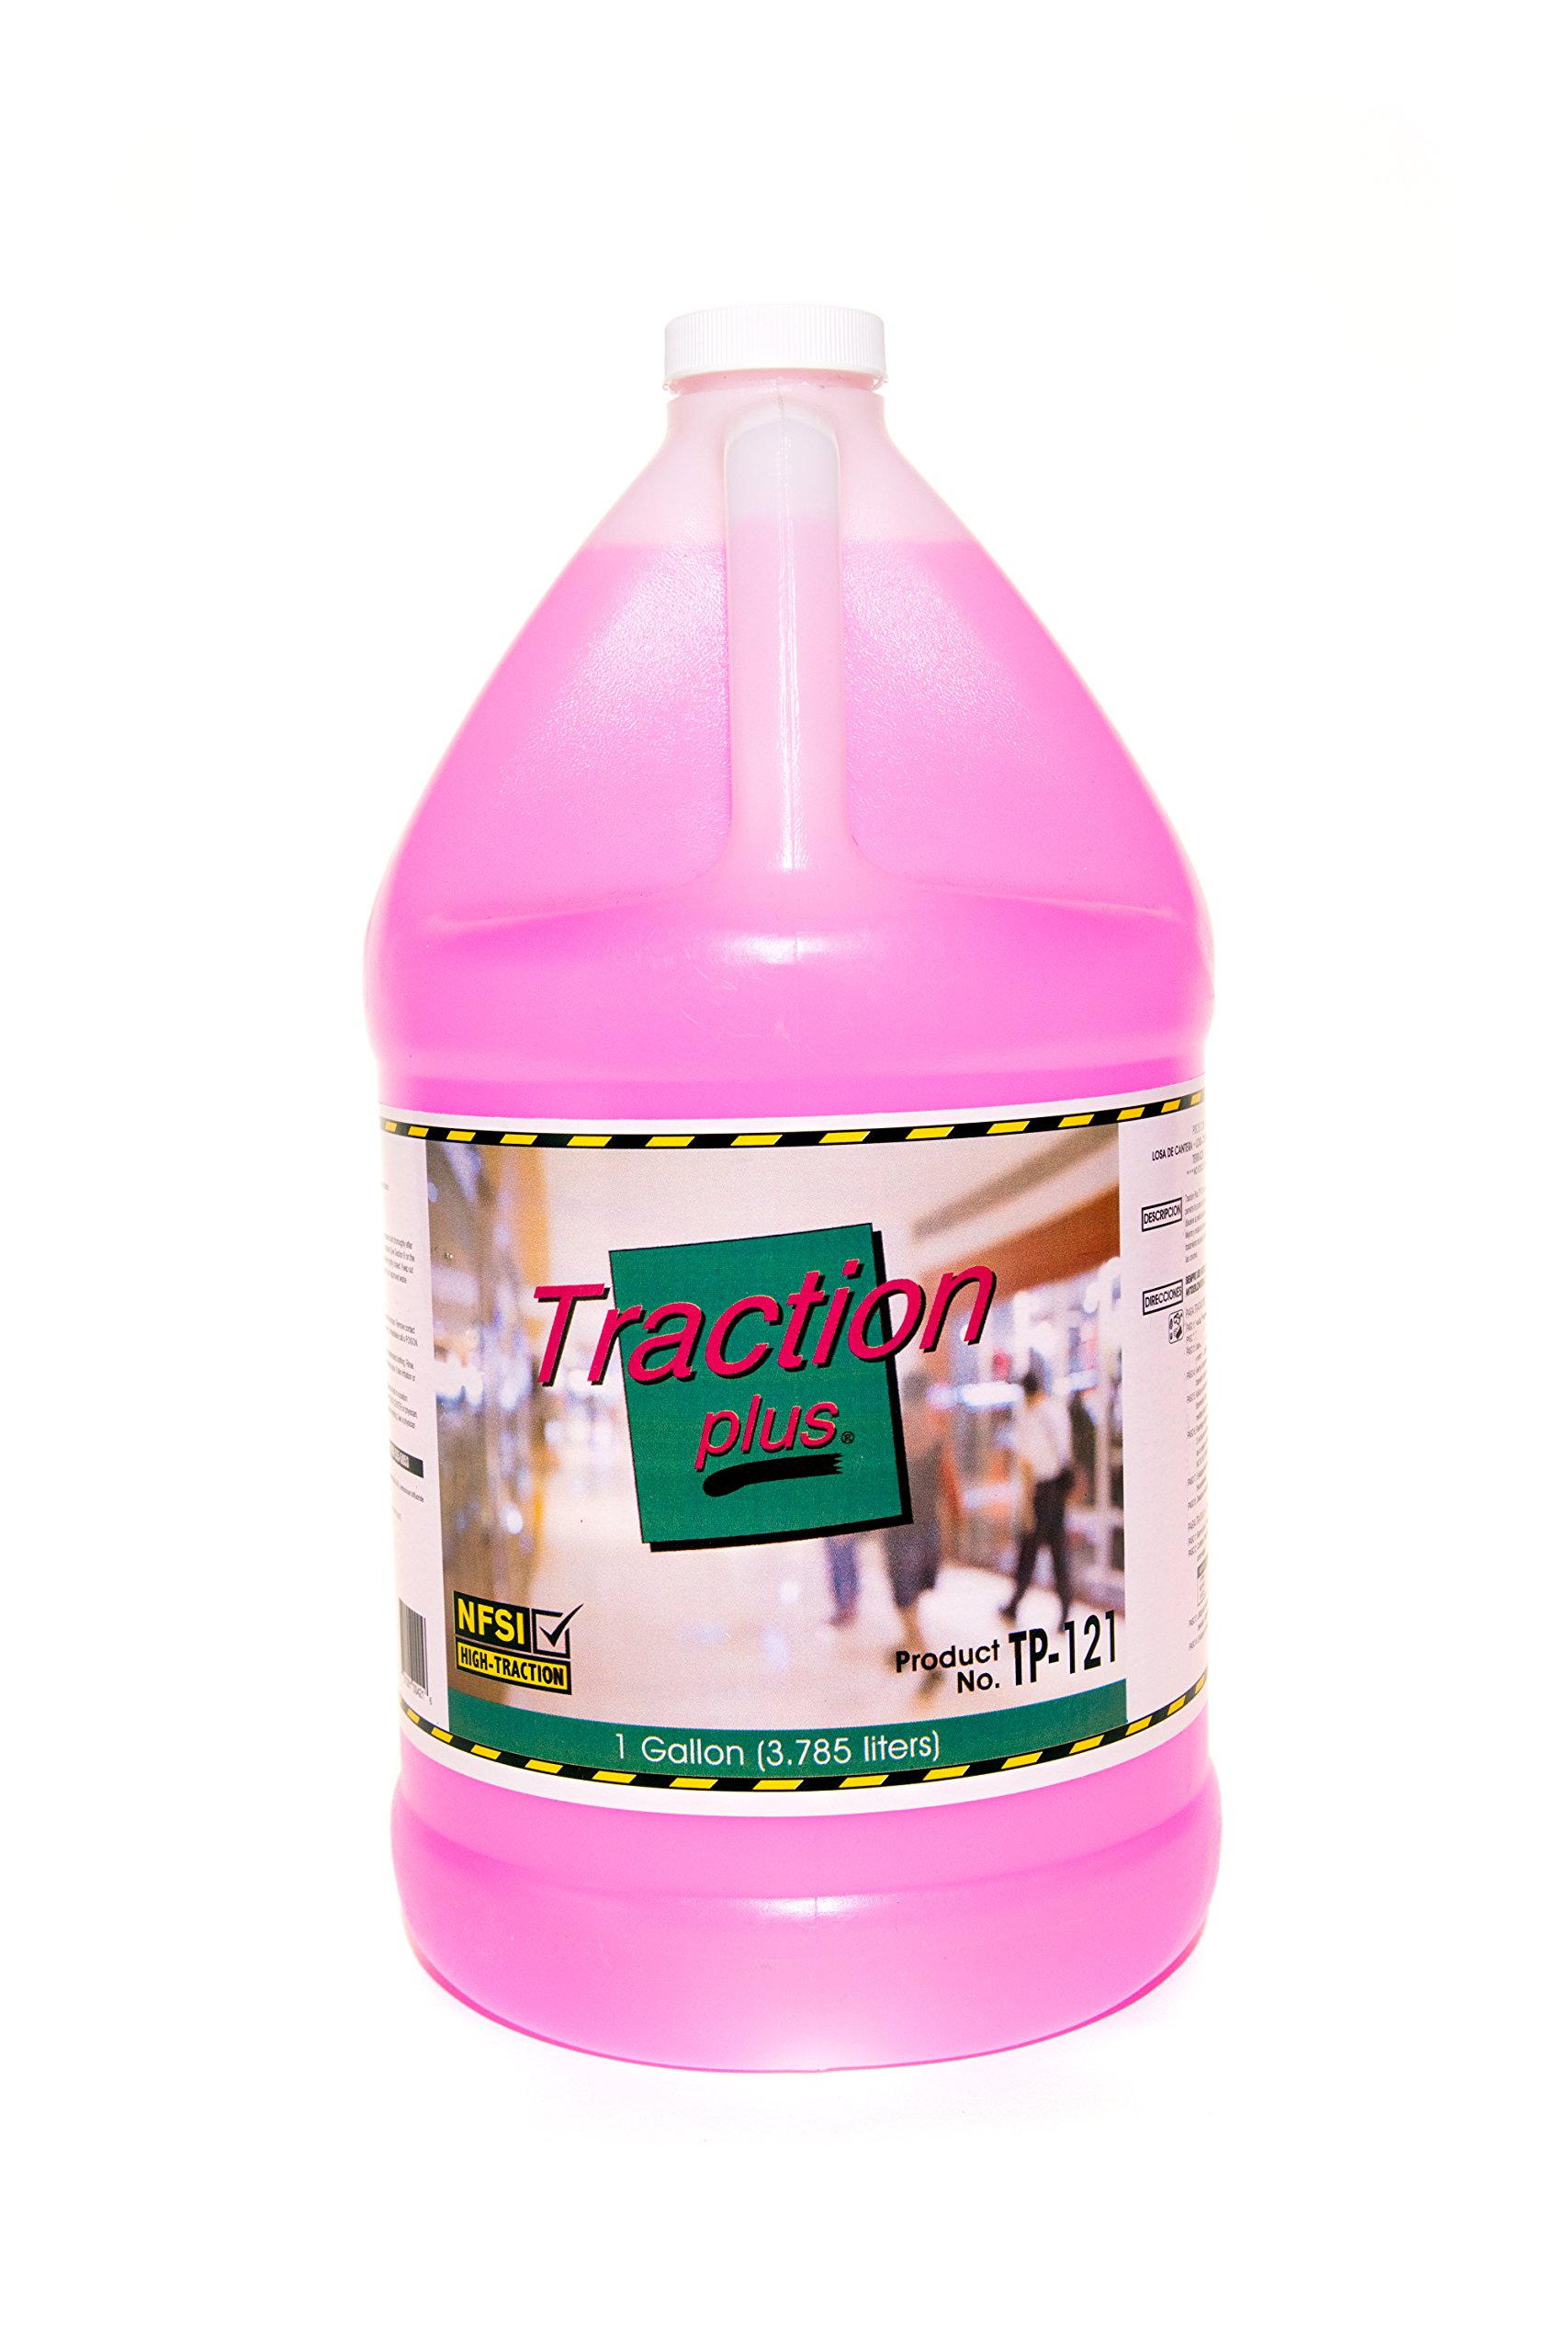 Traction Plus TP-121 - Slip Shield Traction Treatment And Floor Maintainer - 1 Gallon Bottle